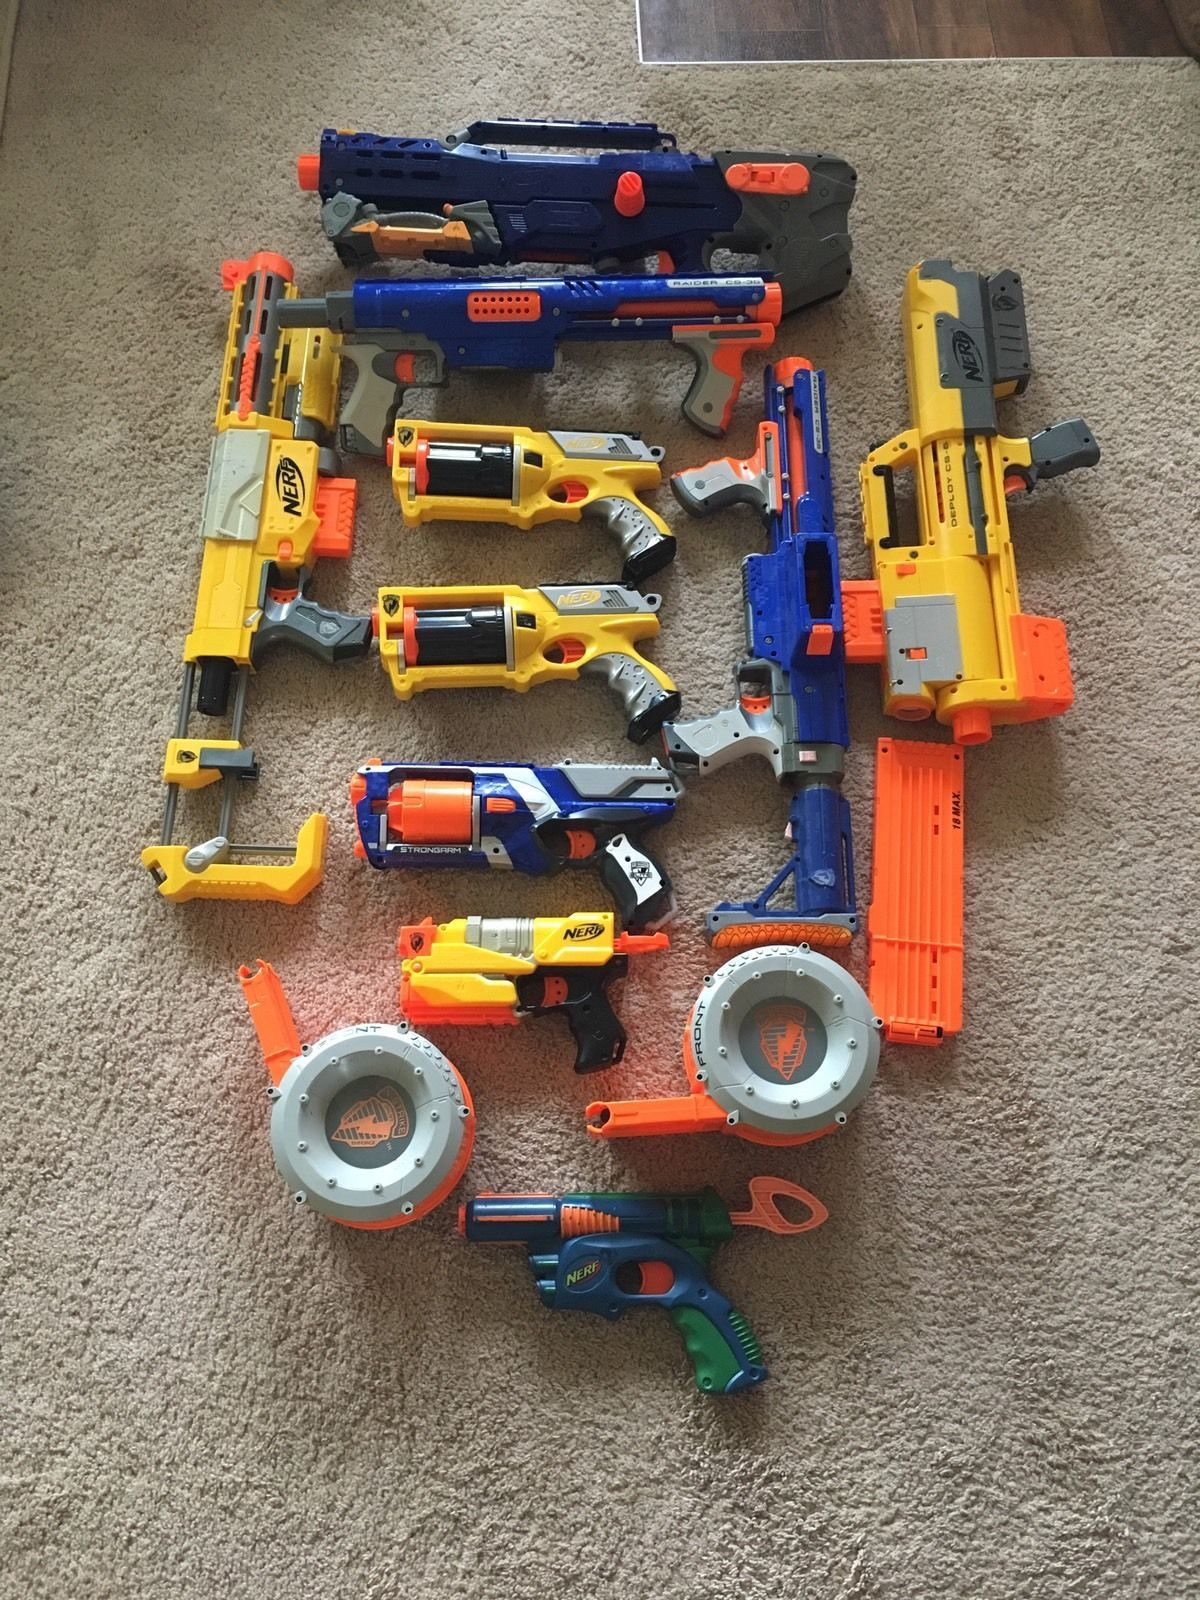 Nerf Gun Lot 10 Guns. Great For Parties. All Tested And Works